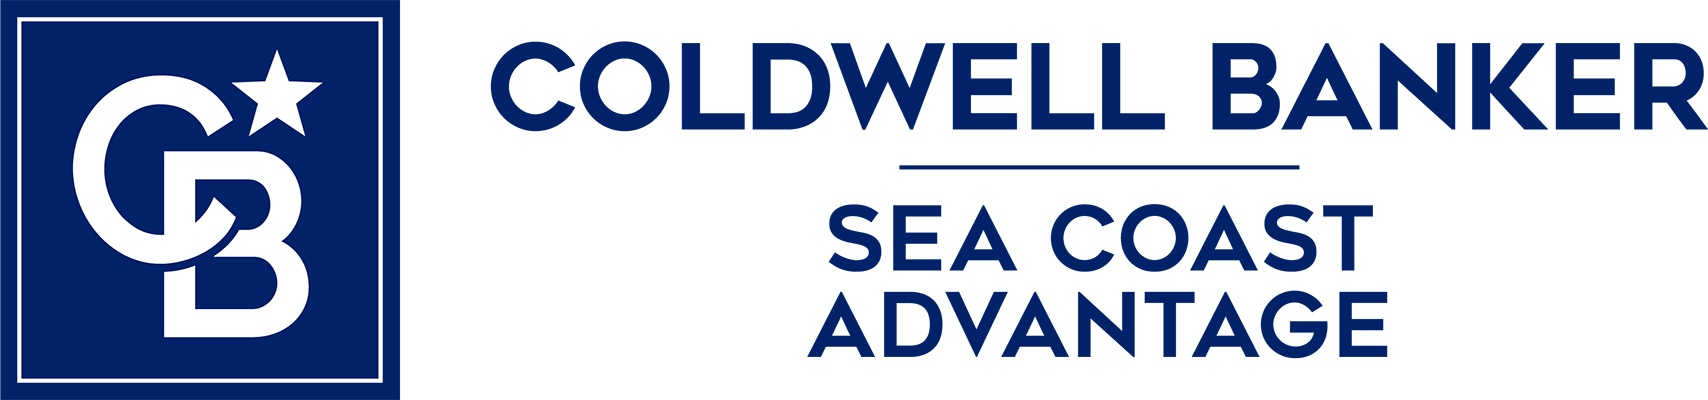 Richard Nava - Coldwell Banker Sea Coast Advantage Realty